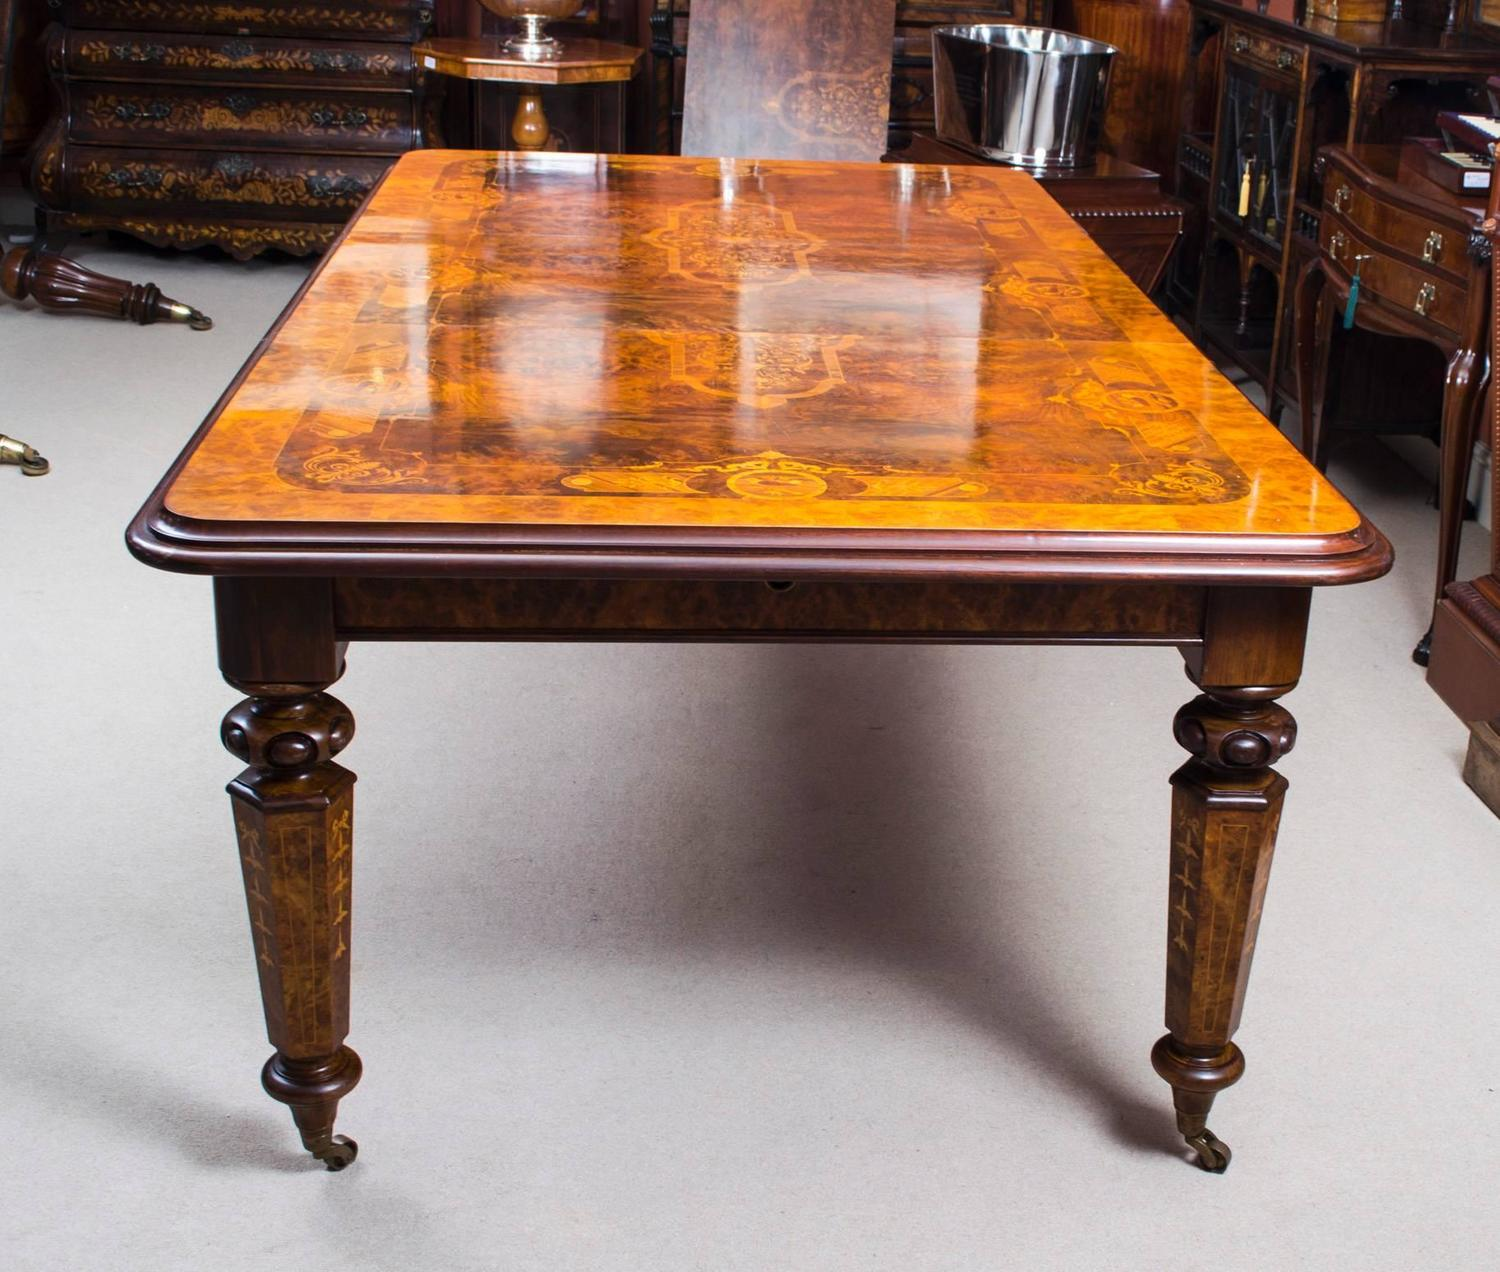 Stunning burr walnut and marquetry dining table for sale for 10 ft dining table sale